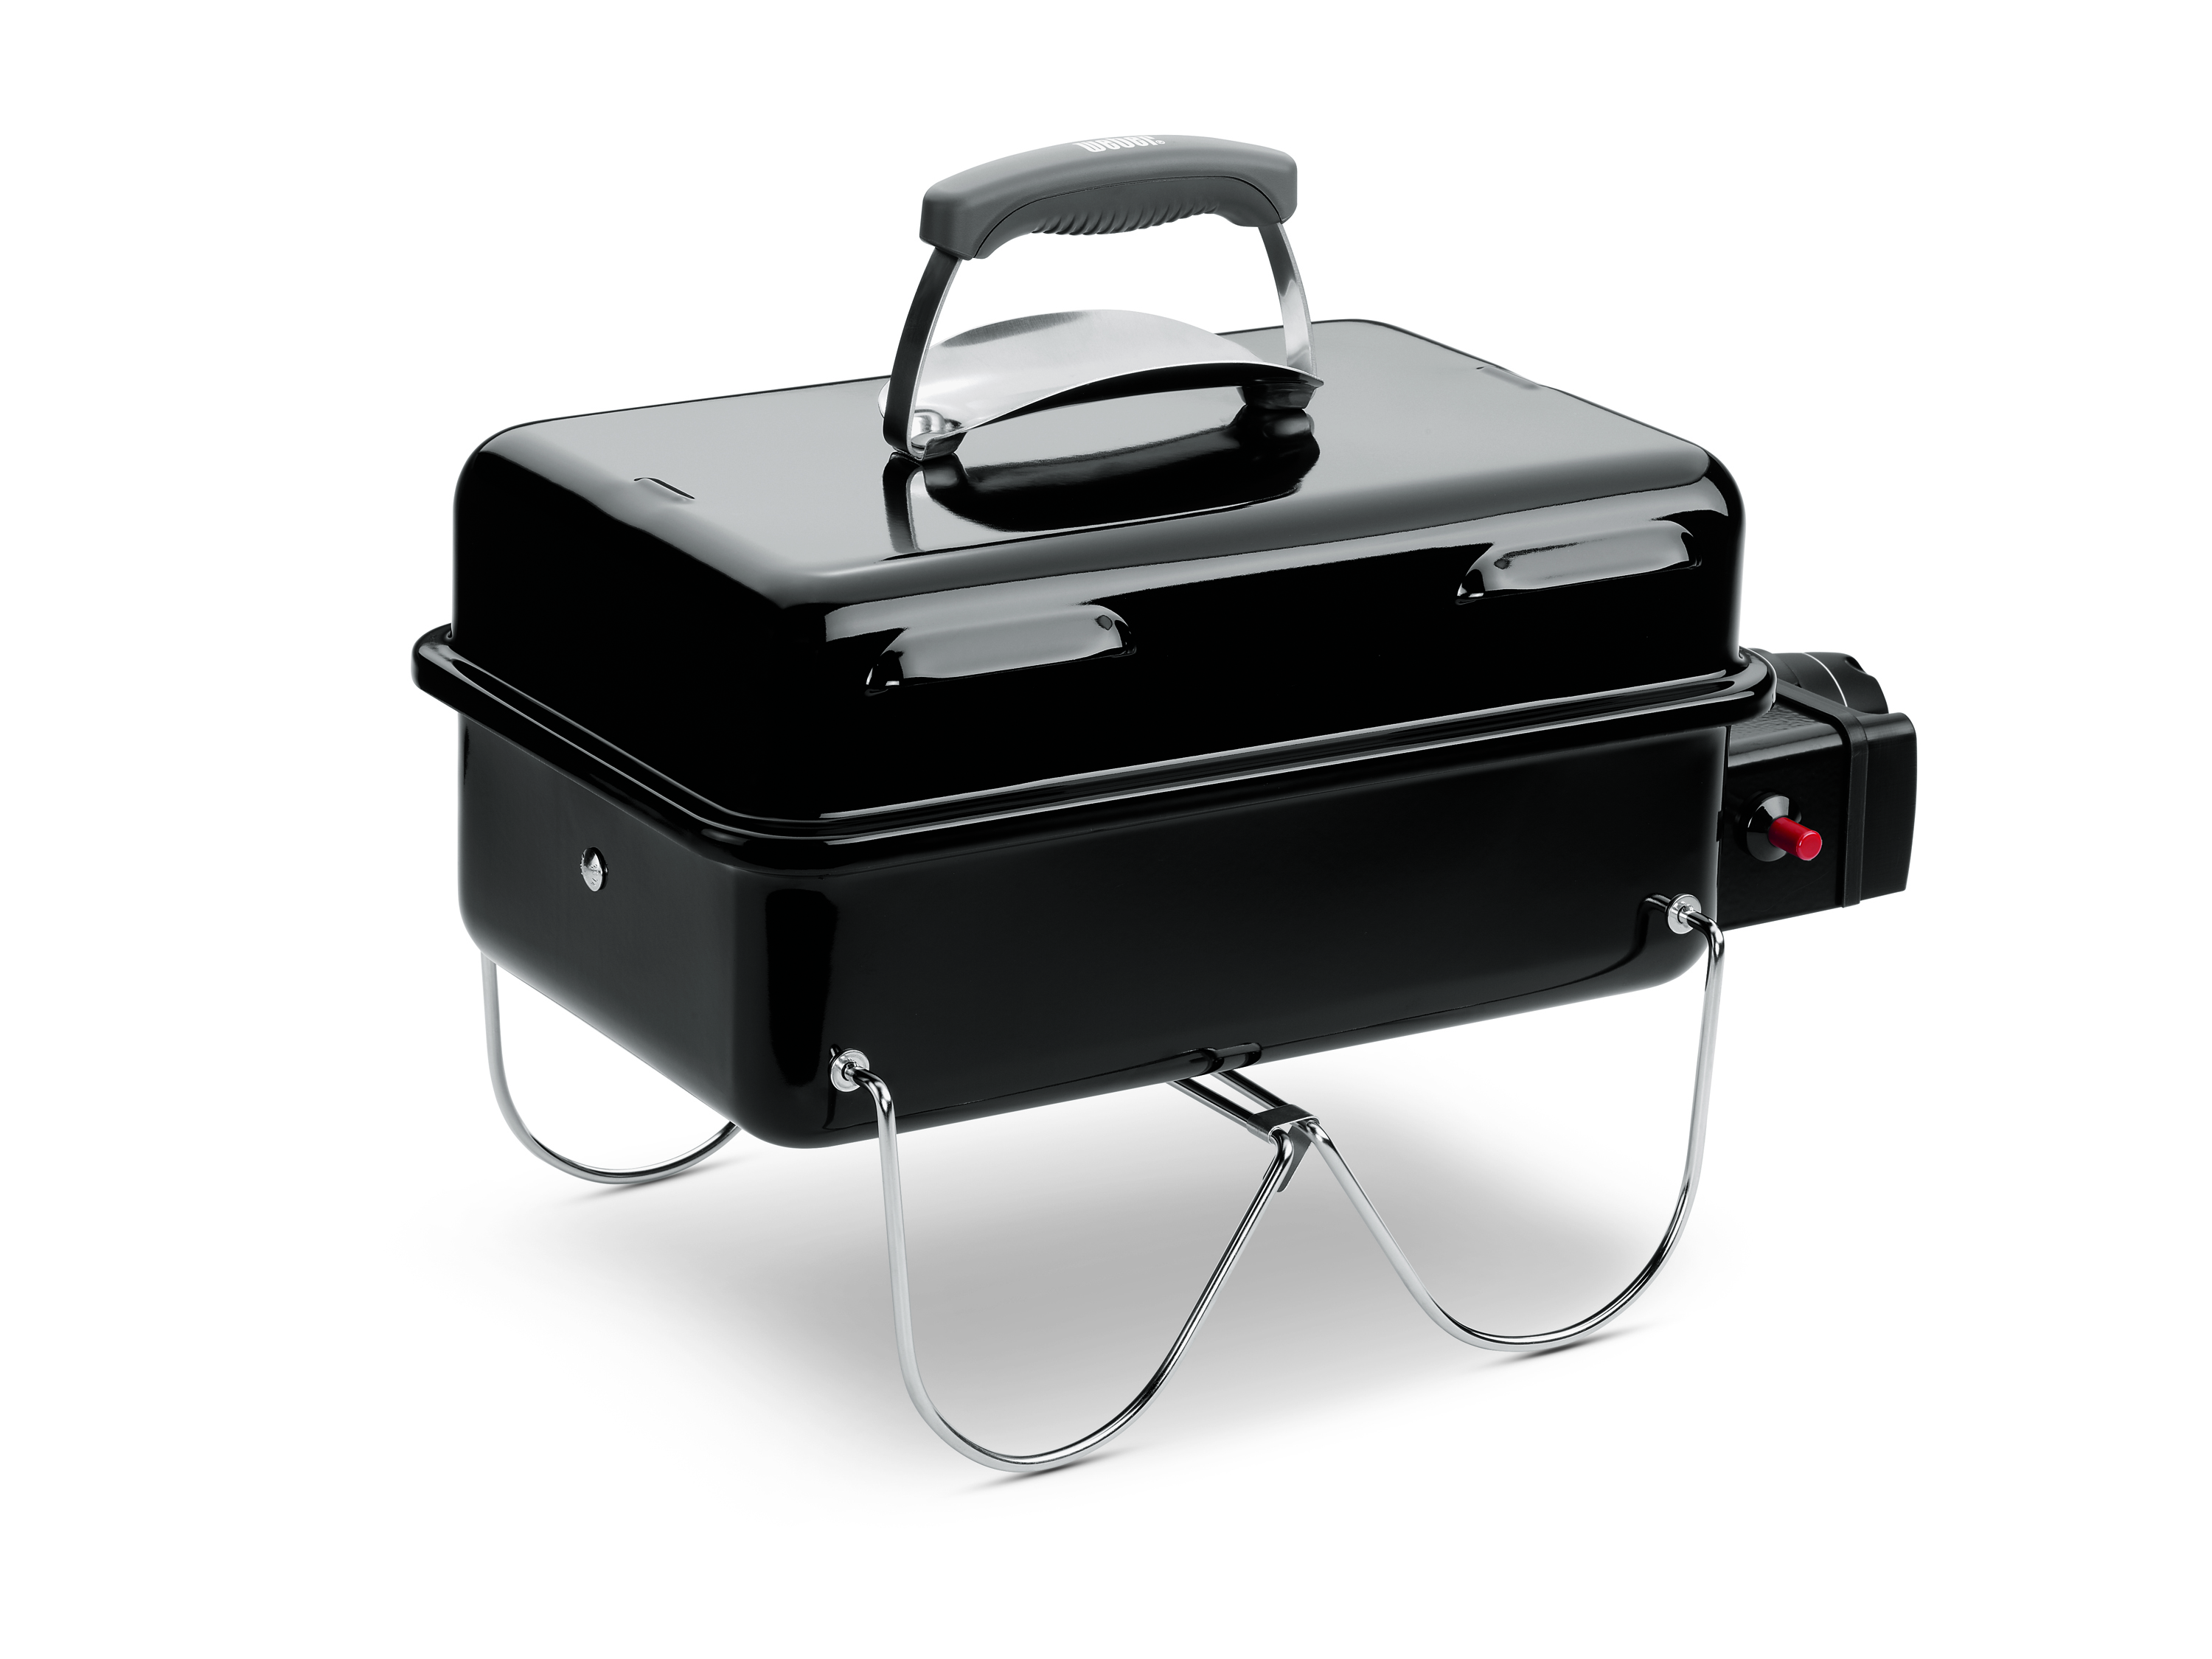 Weber Elektrogrill Bedienung : Weber go anywhere gas black go anywhere gasgrill grills